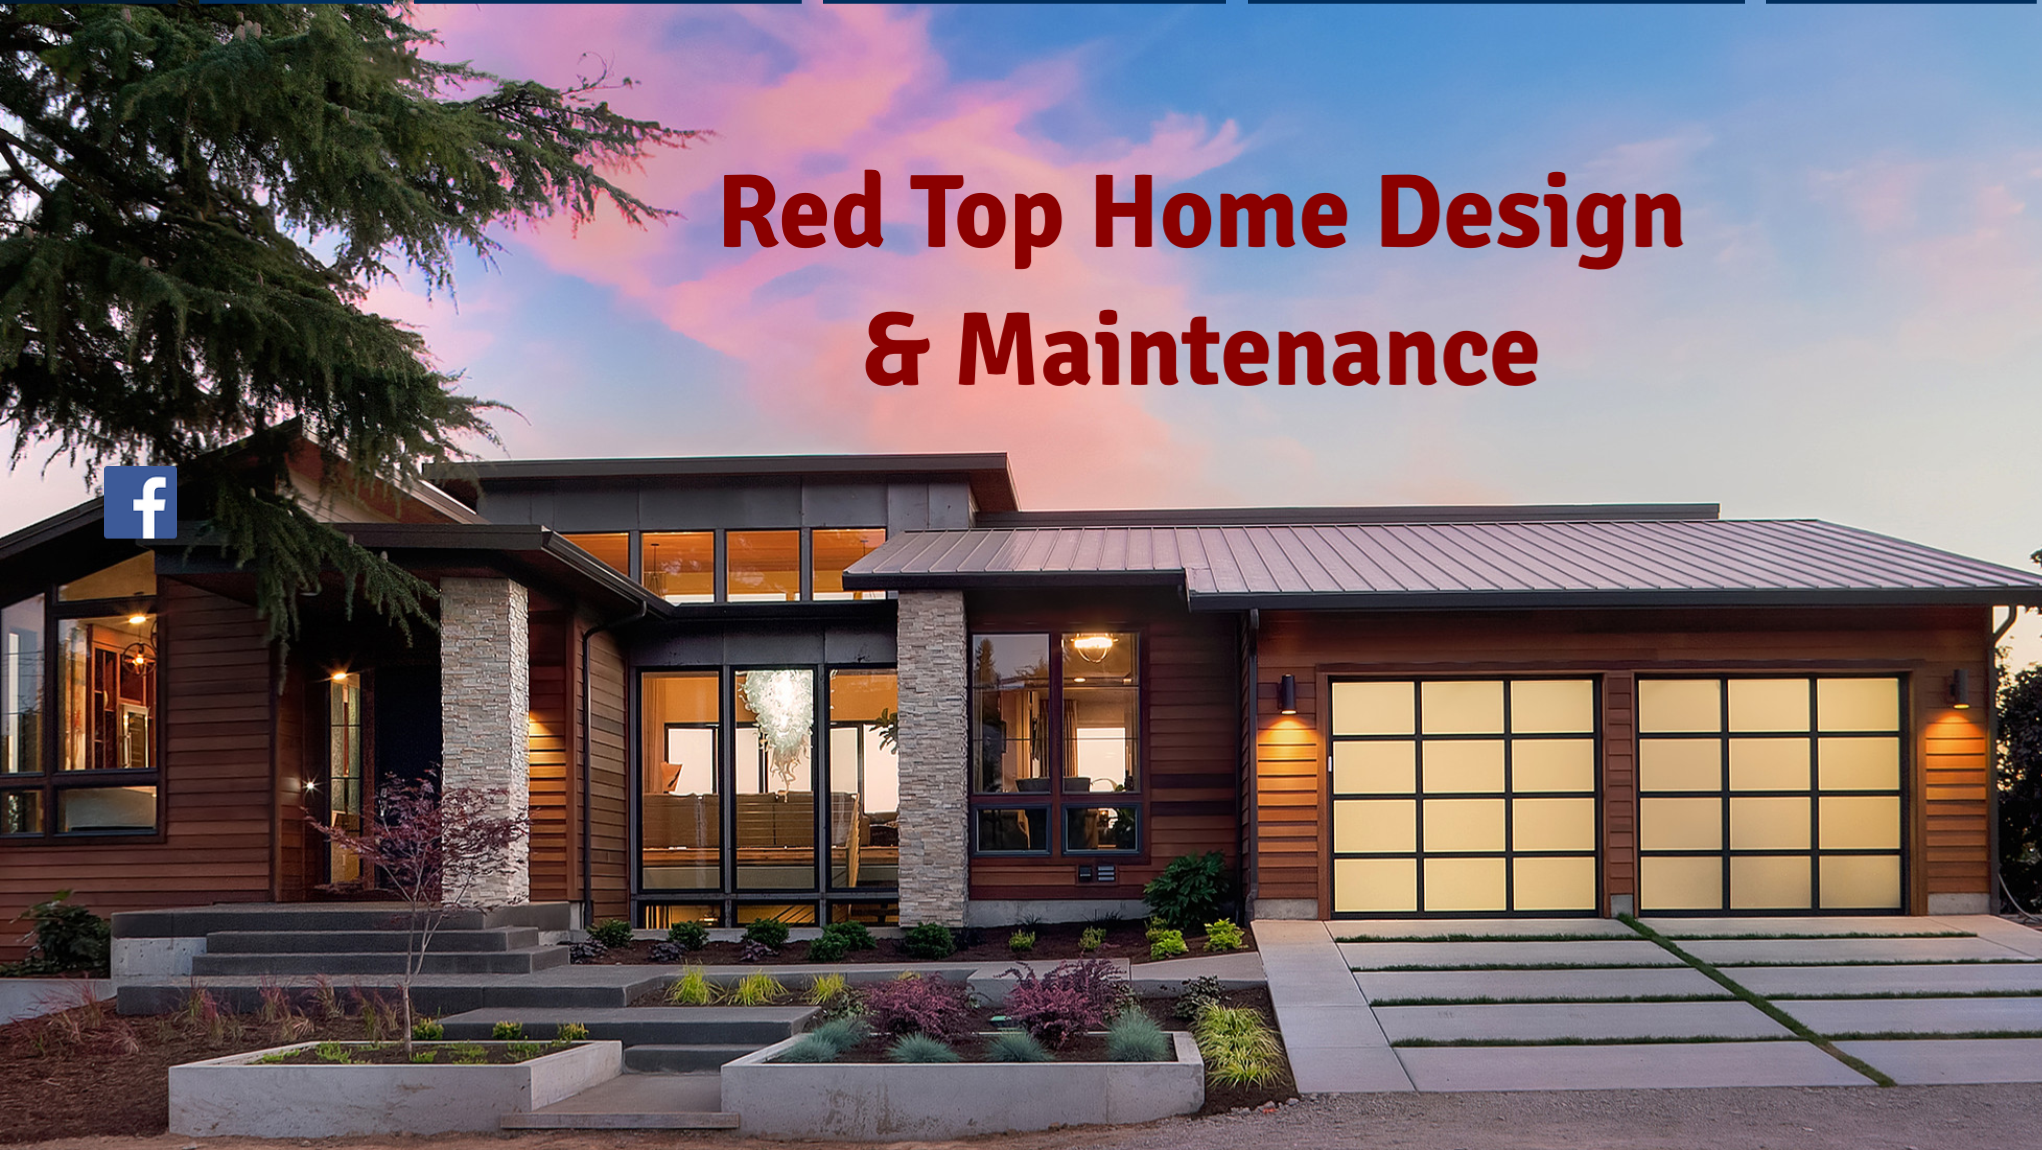 Red Top Home Design and Maintenance|Handymen, Home Improvement,